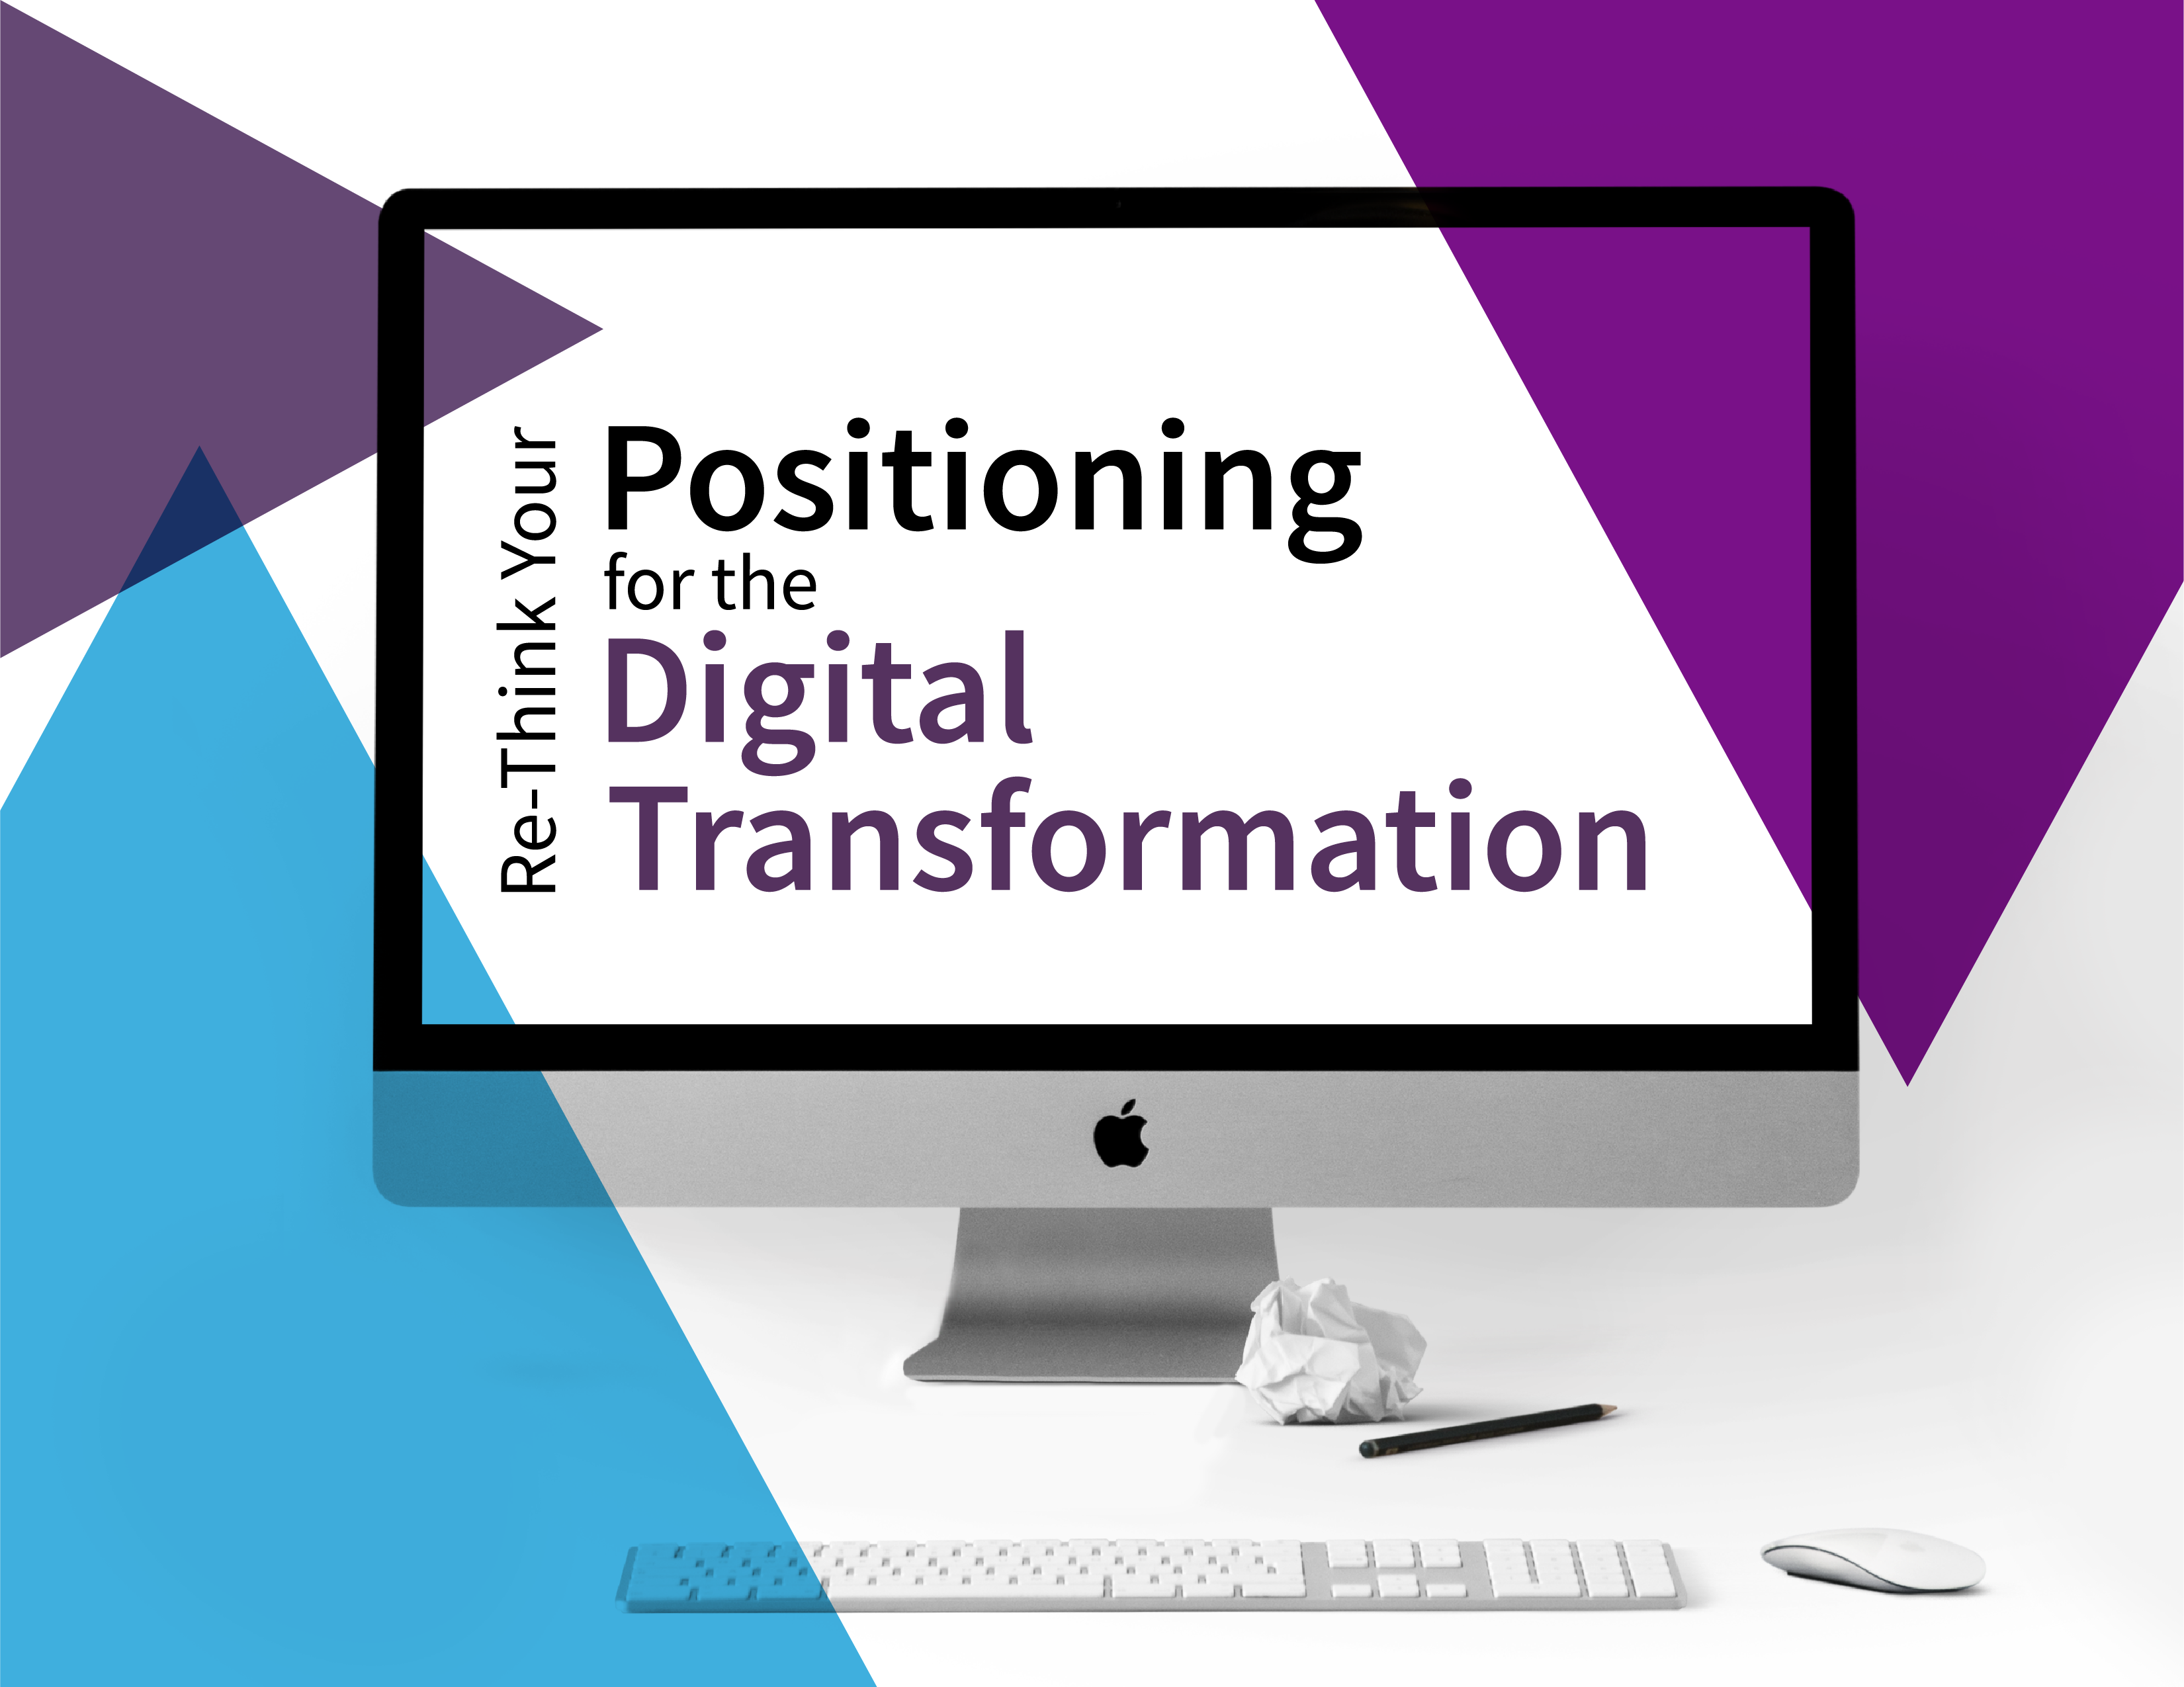 Positioning for the Digital Transformation